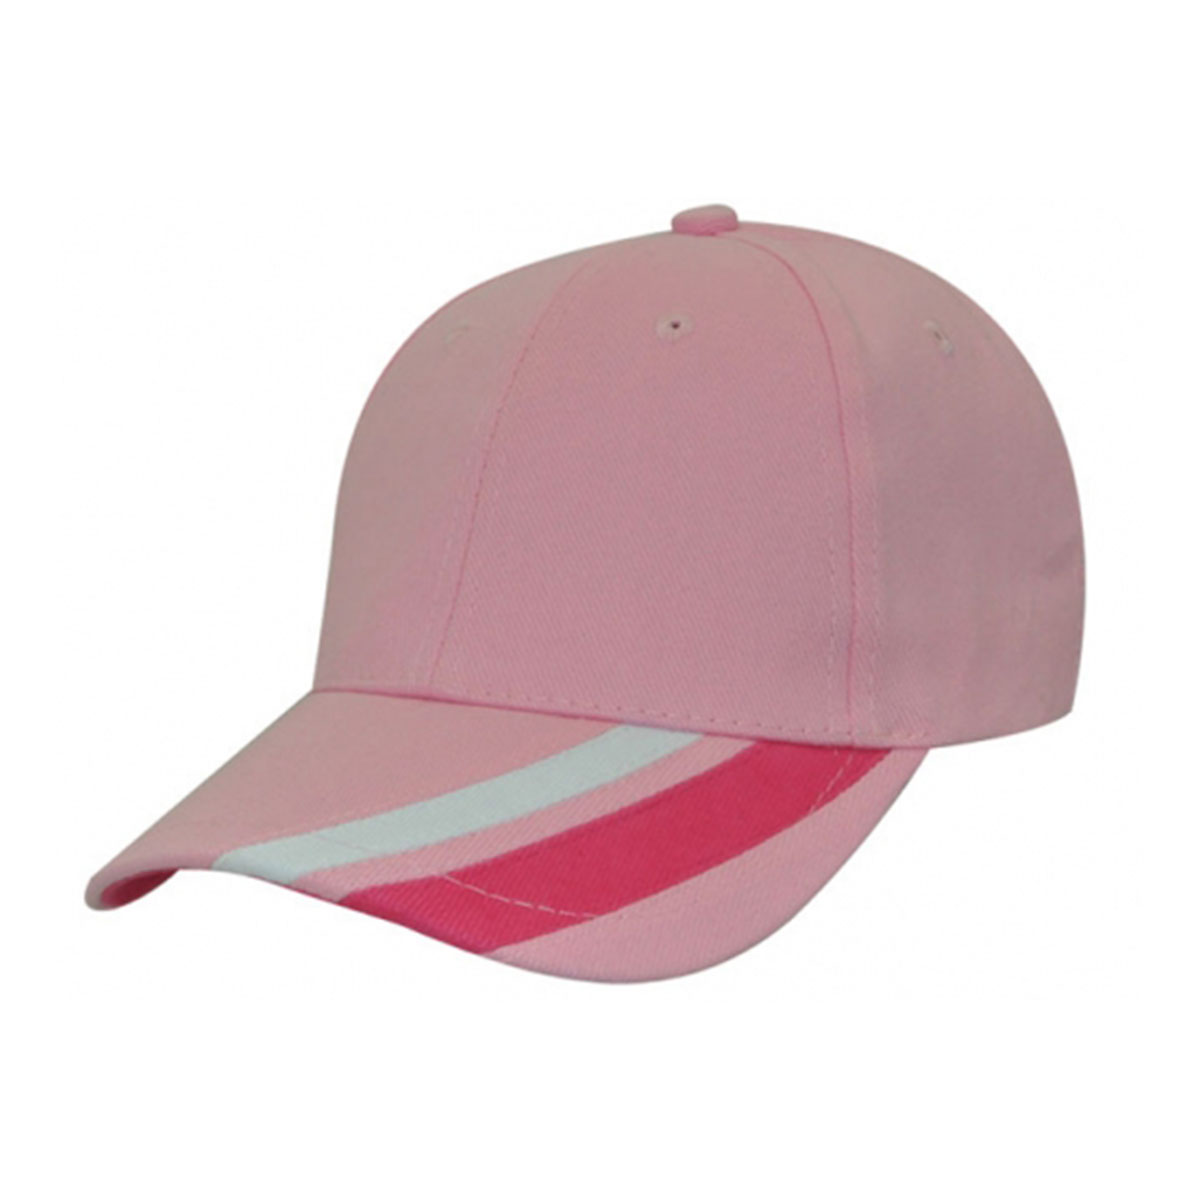 Metric Cap-Musk / White / Hot Pink